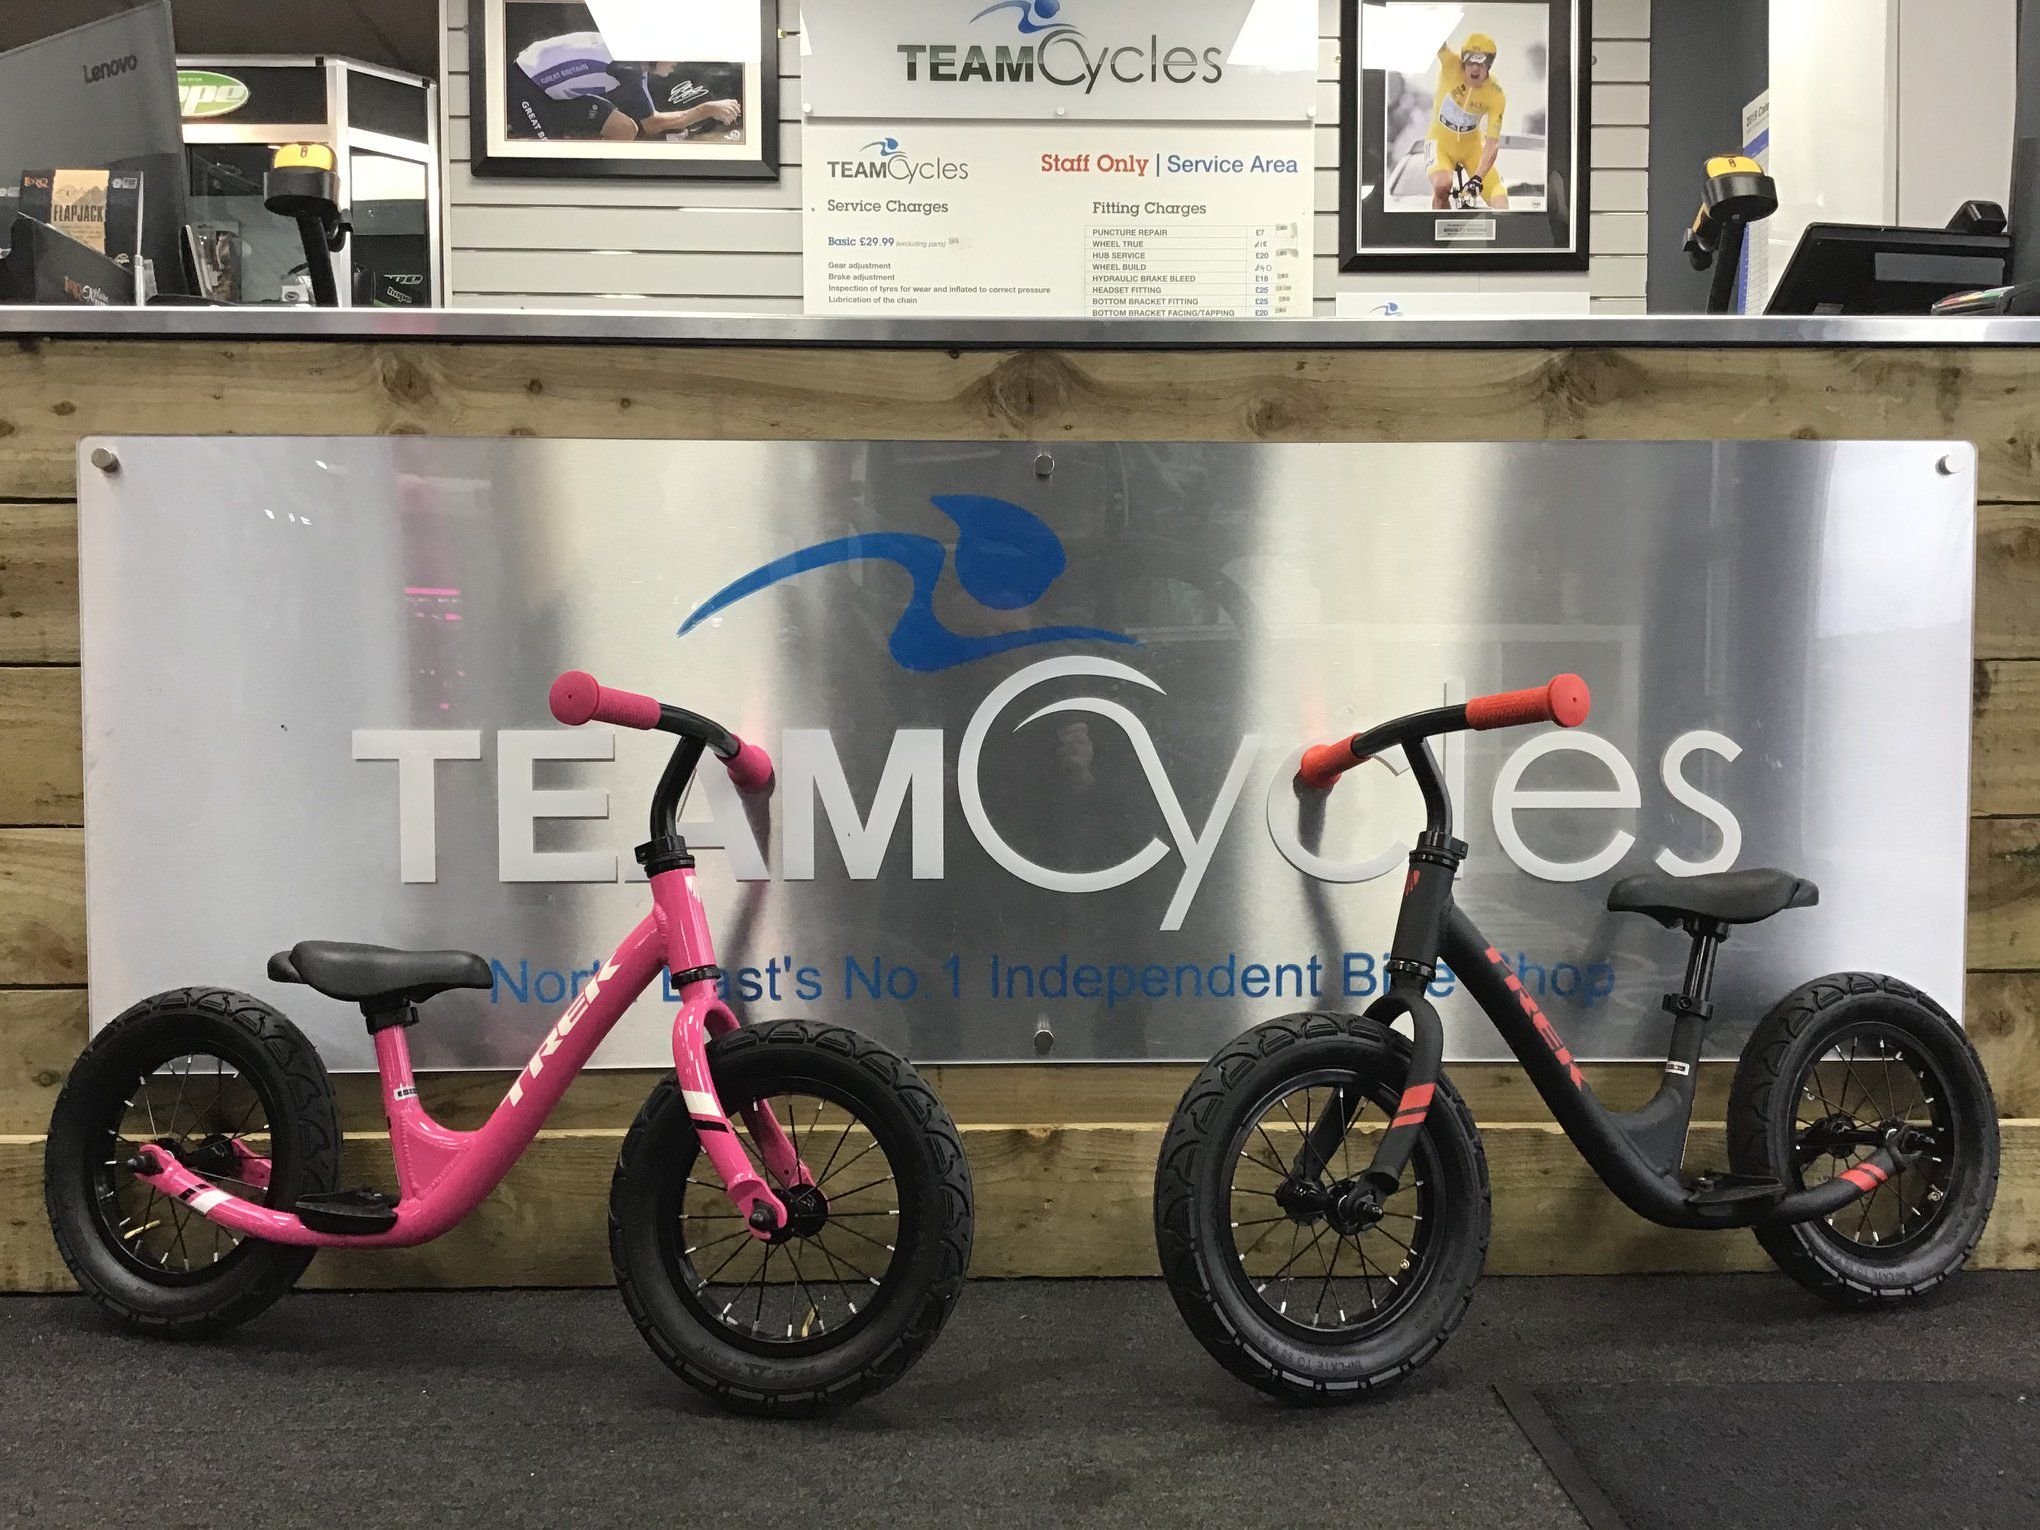 Competition Win A Trek Balance Bike Worth 150 For Your Child In